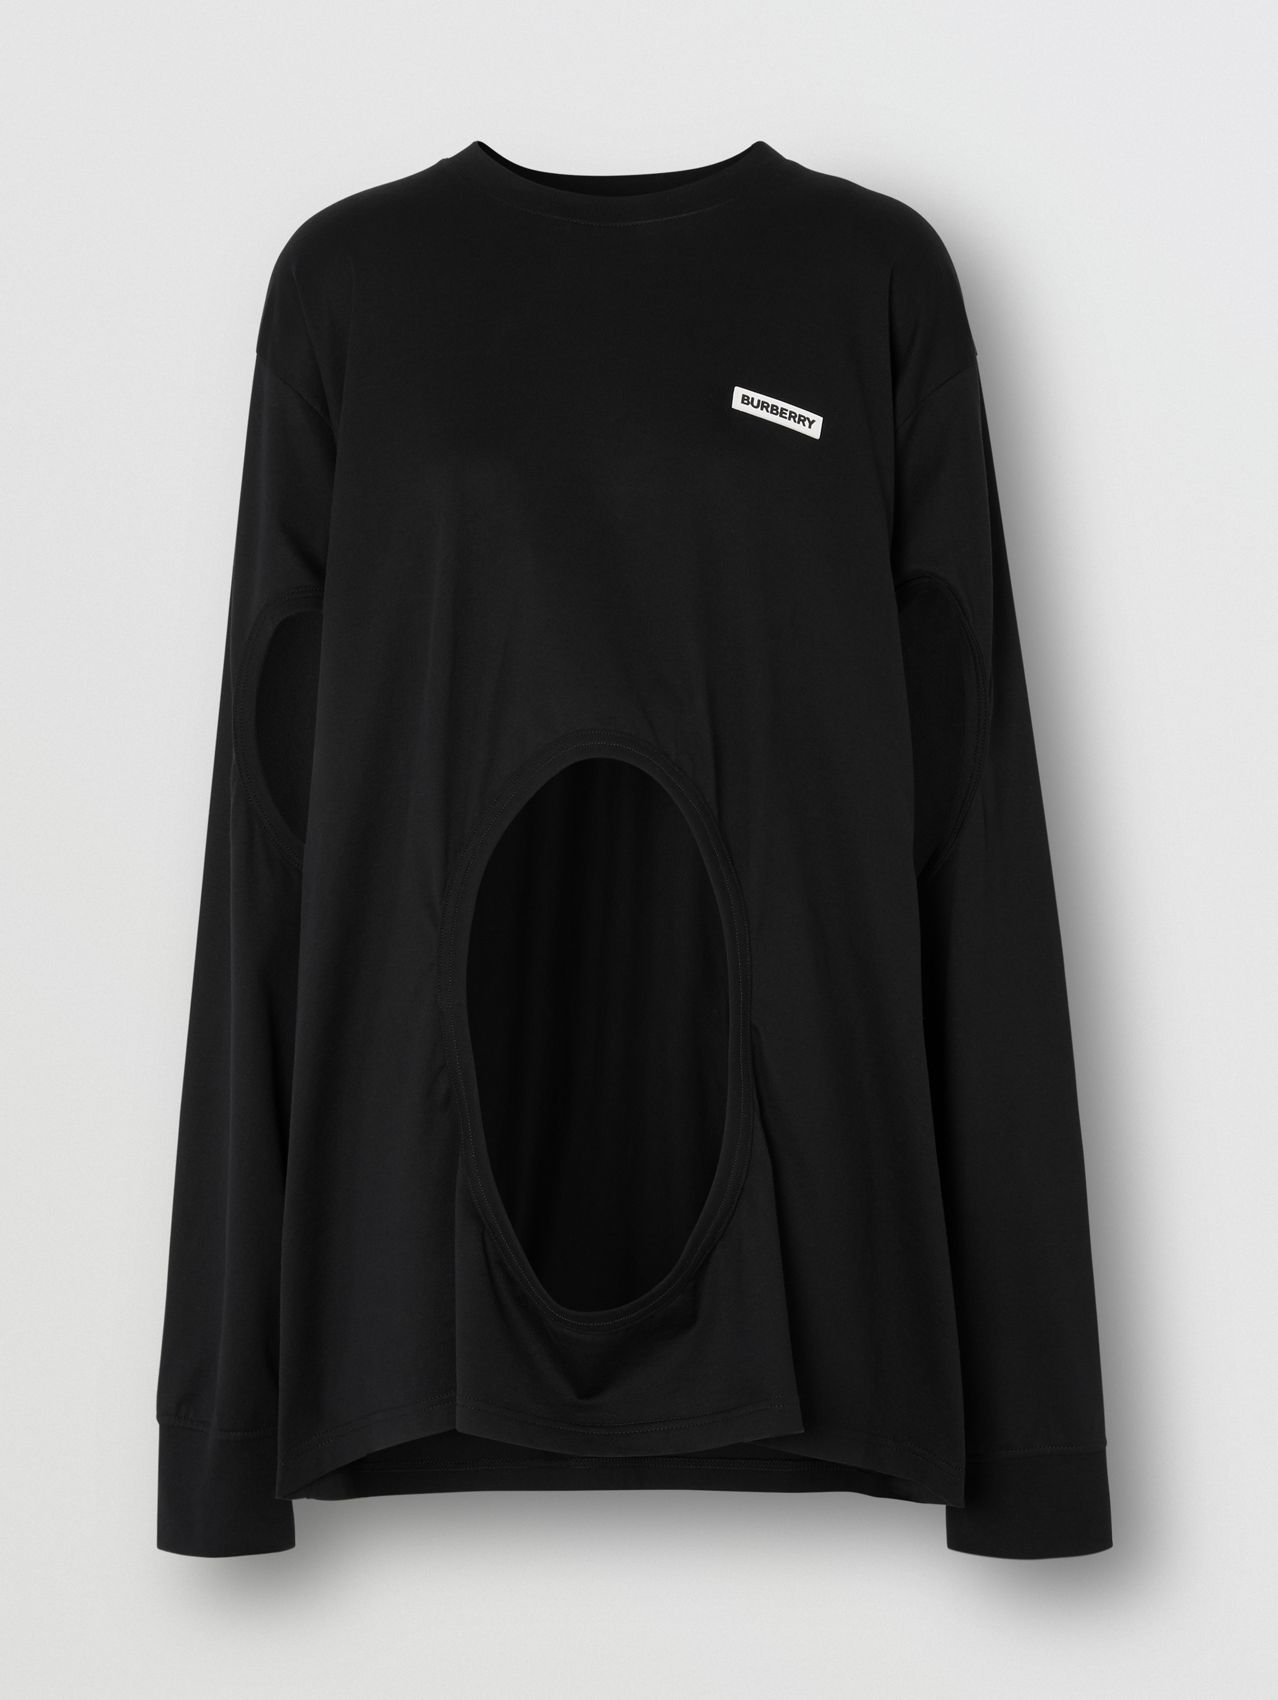 Cut-out Panel Swan Print Cotton Oversized Top in Black